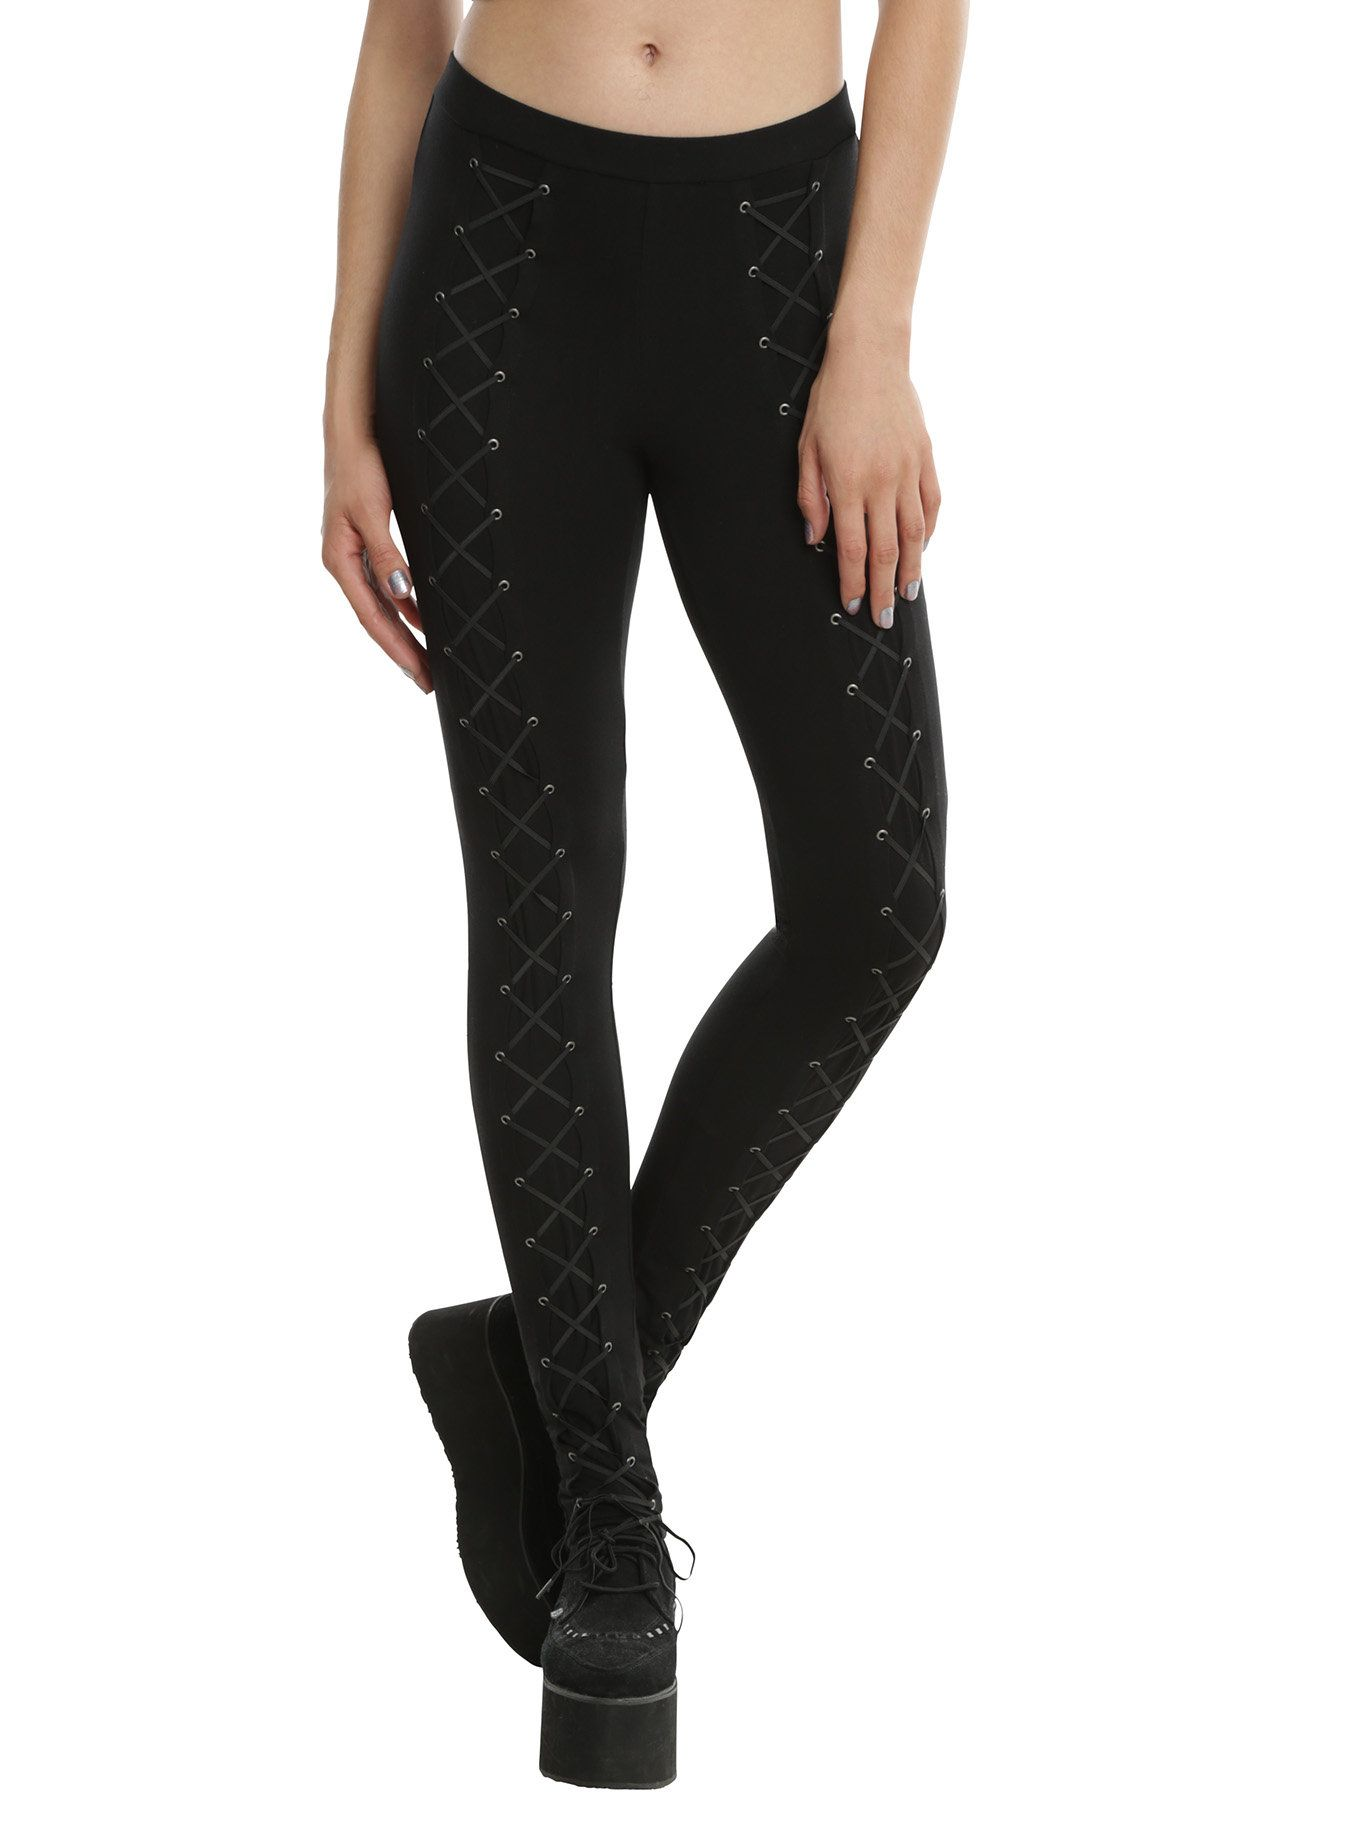 b3d3beb43bd93 So serious, in fact, that these leggings are about to become a staple in  your wardrobe. Black leggings from Blackheart with front lace-up details  from ankle ...